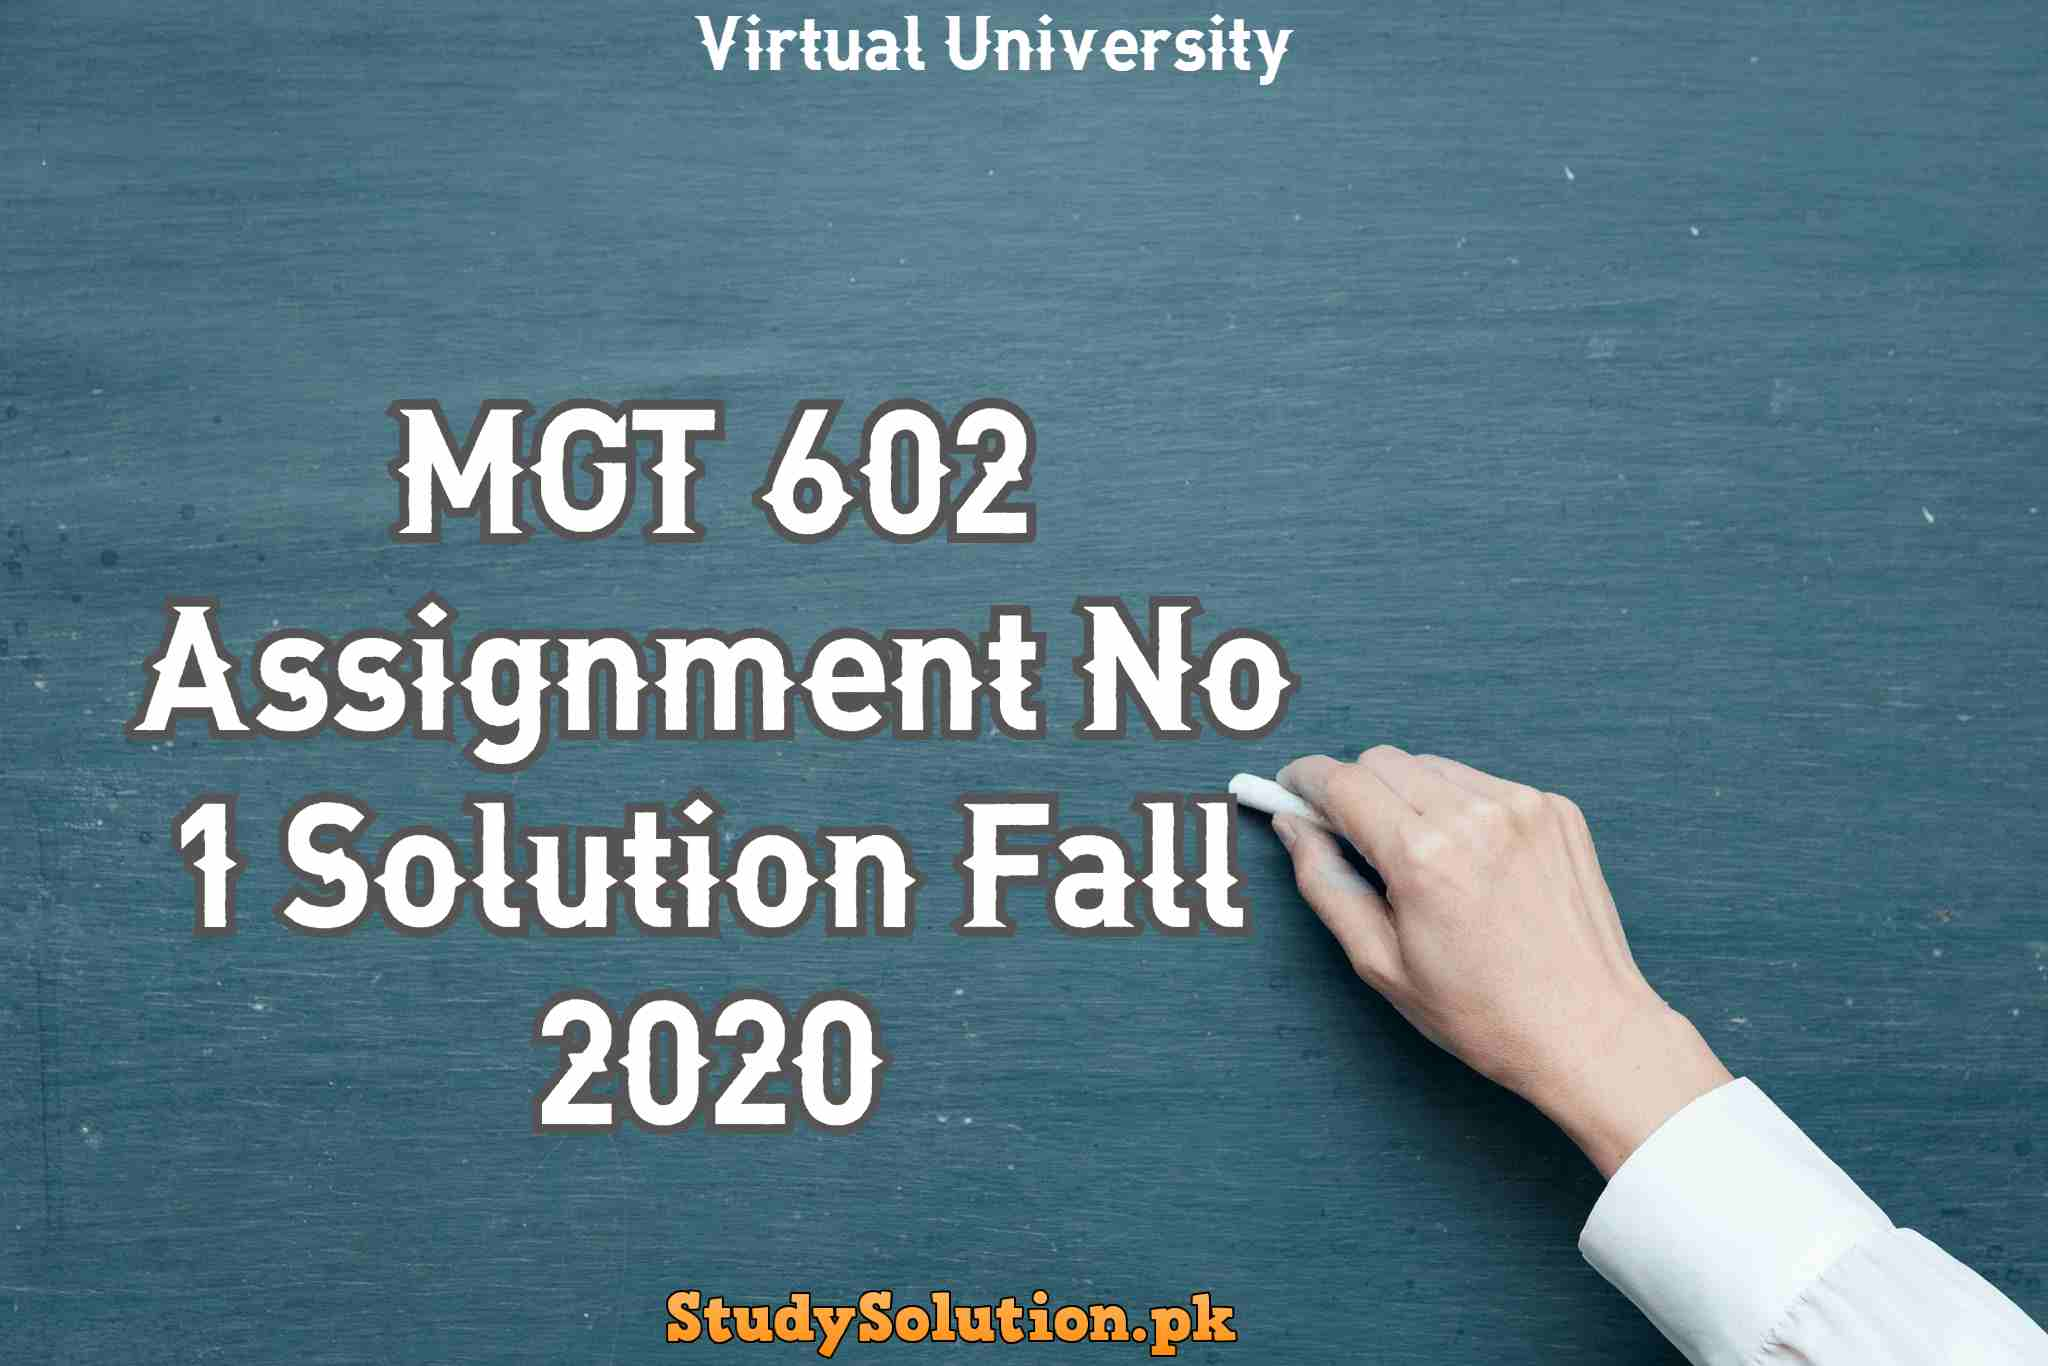 MGT 602 Assignment No 1 Solution Fall 2020